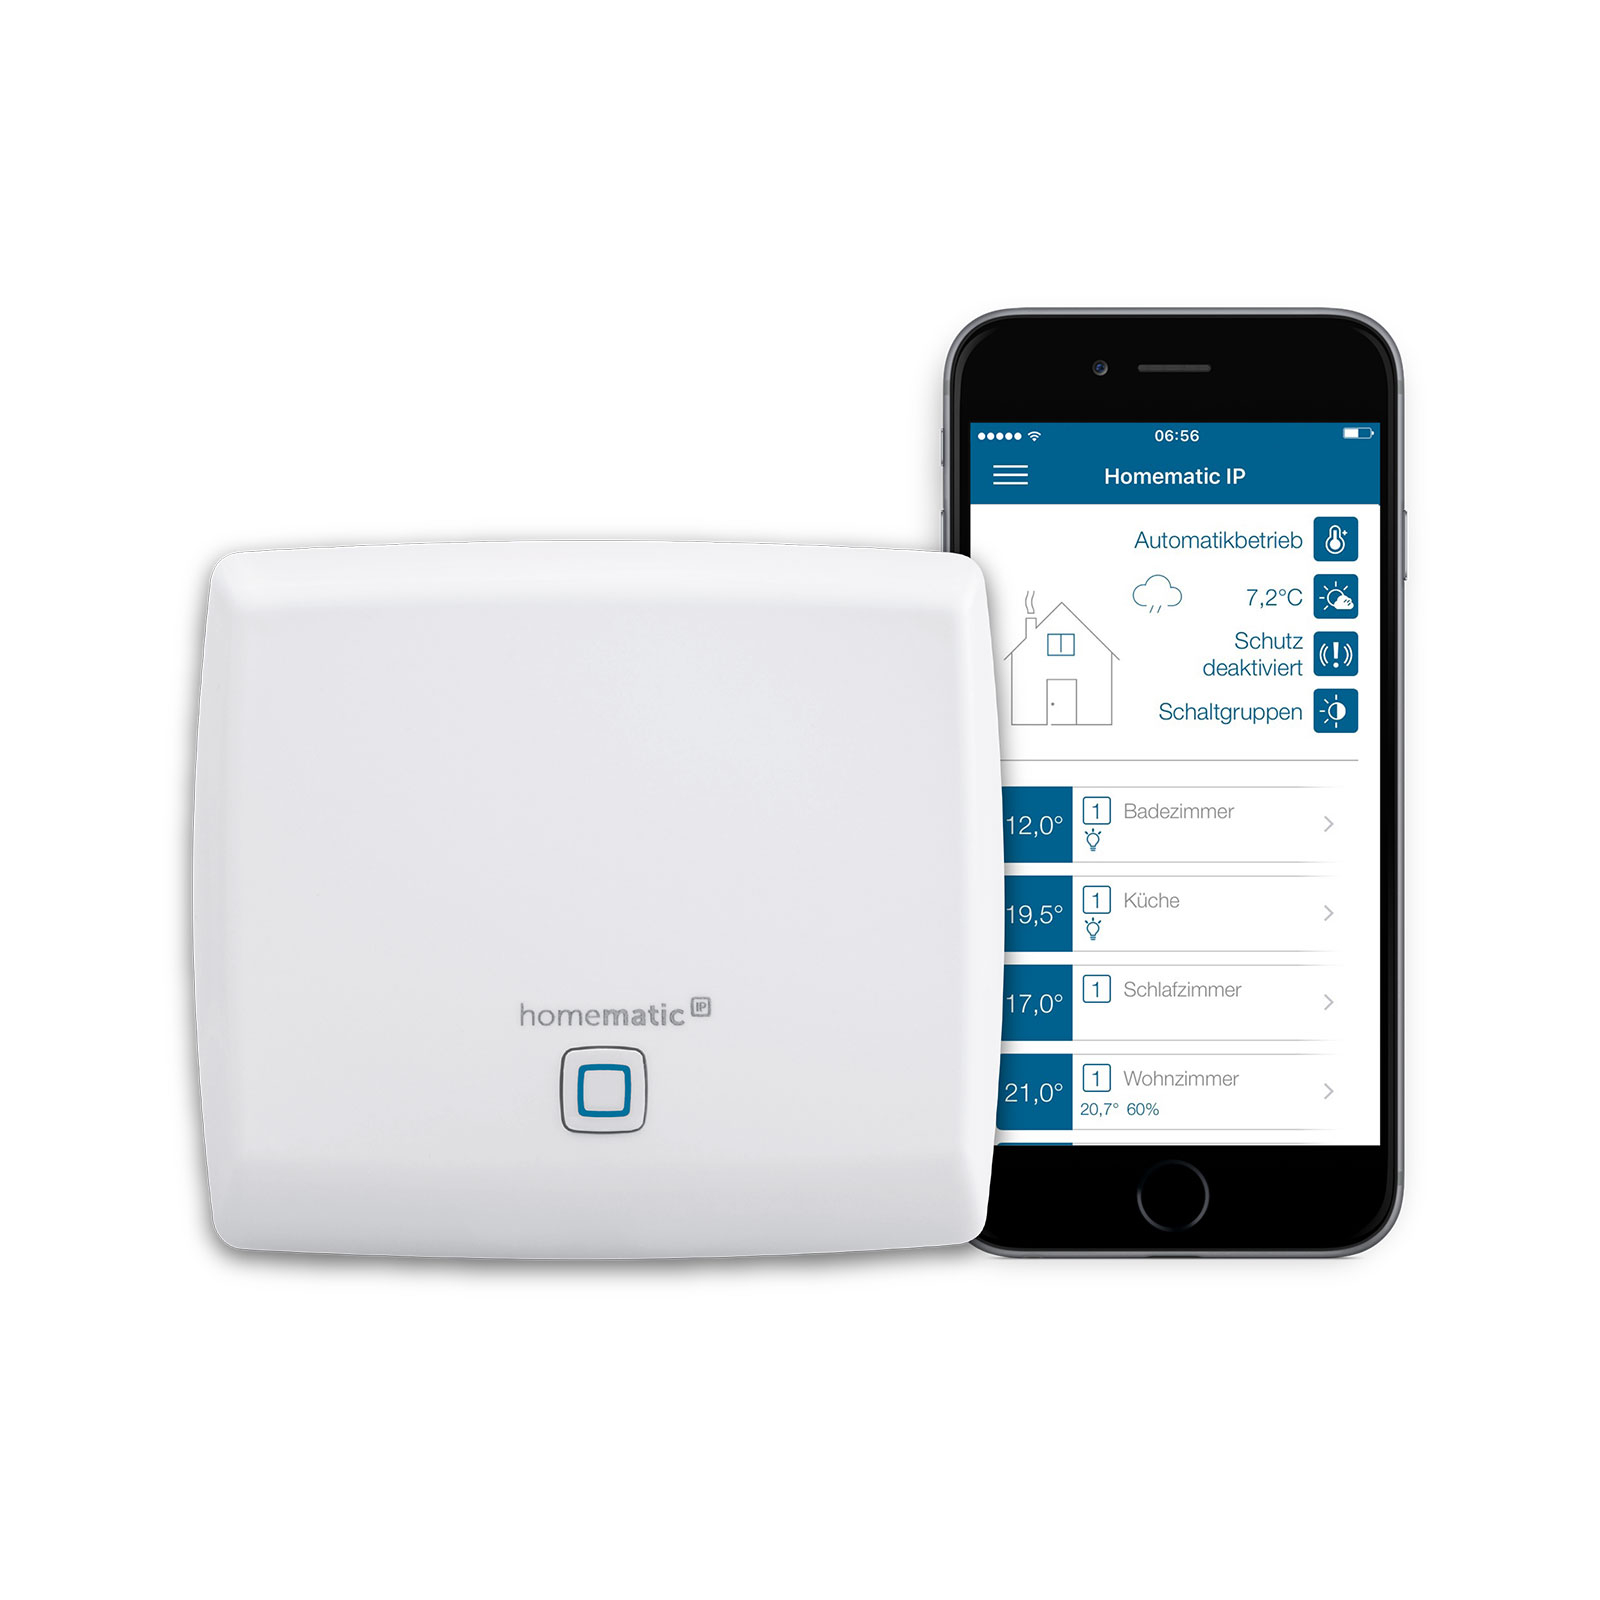 Homematic IP Access Point -ohjauskeskus, Cloud